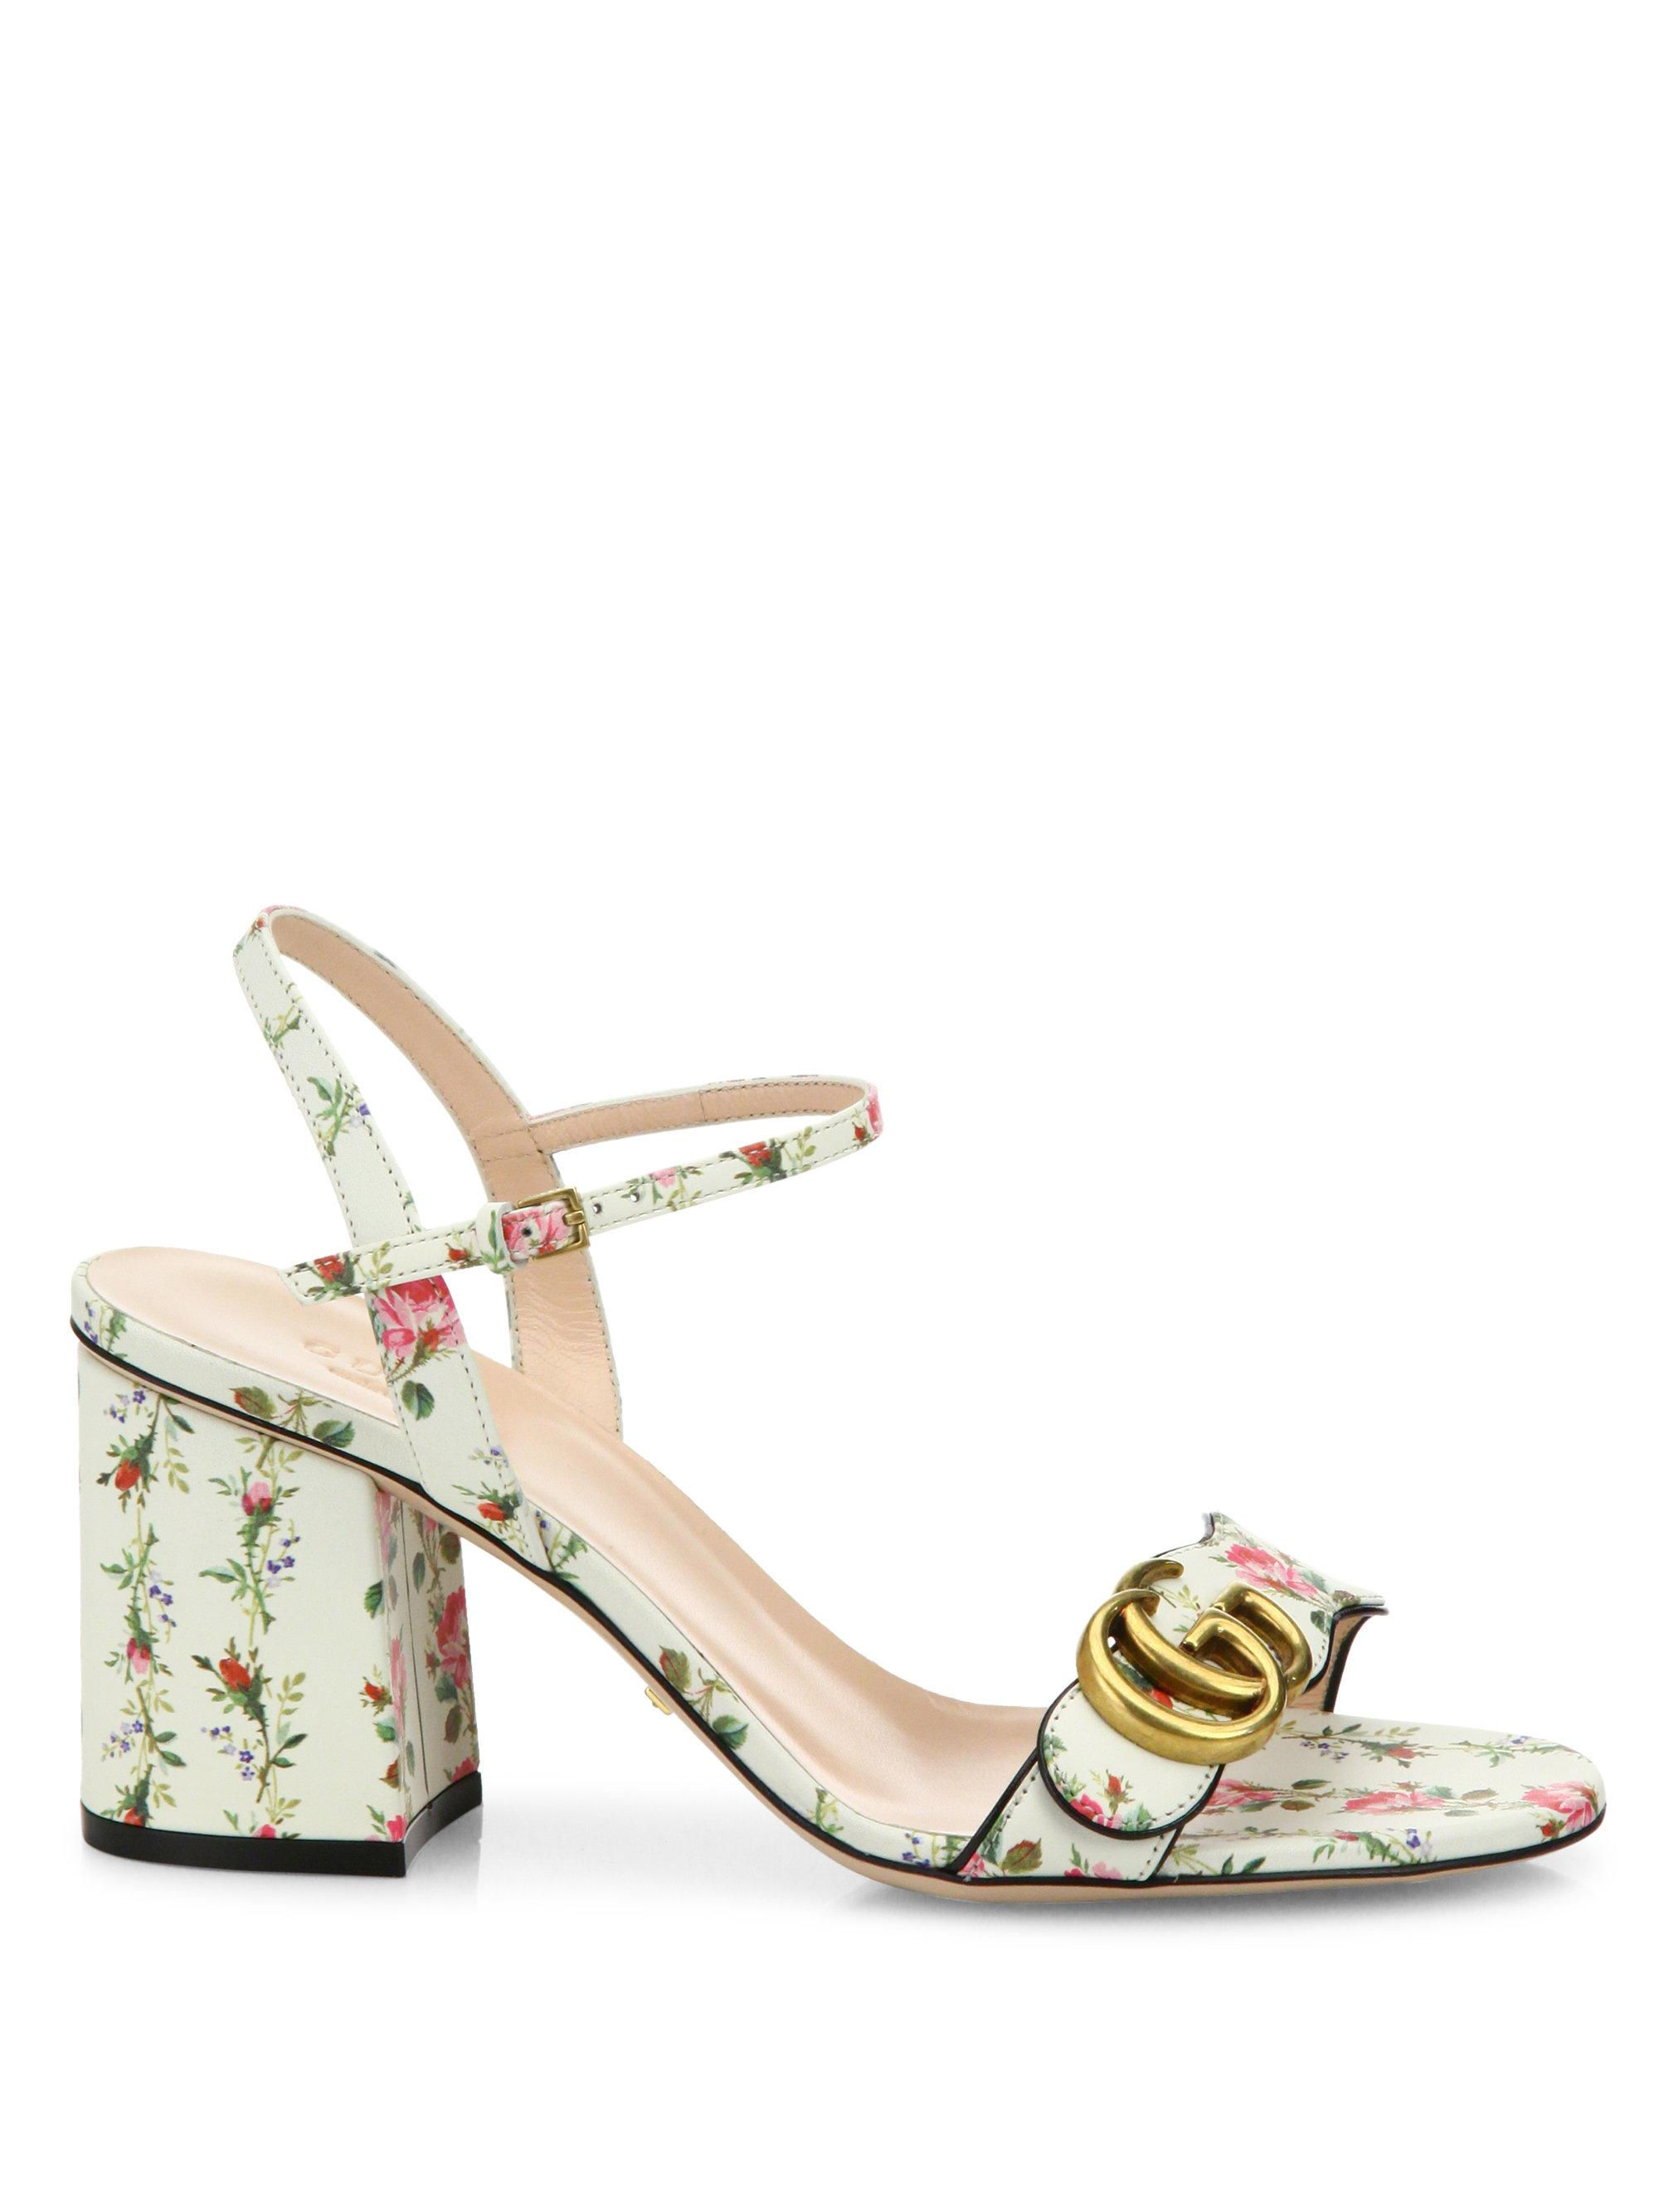 061714b5a92d Lyst - Gucci Floral-print Leather Sandals in White